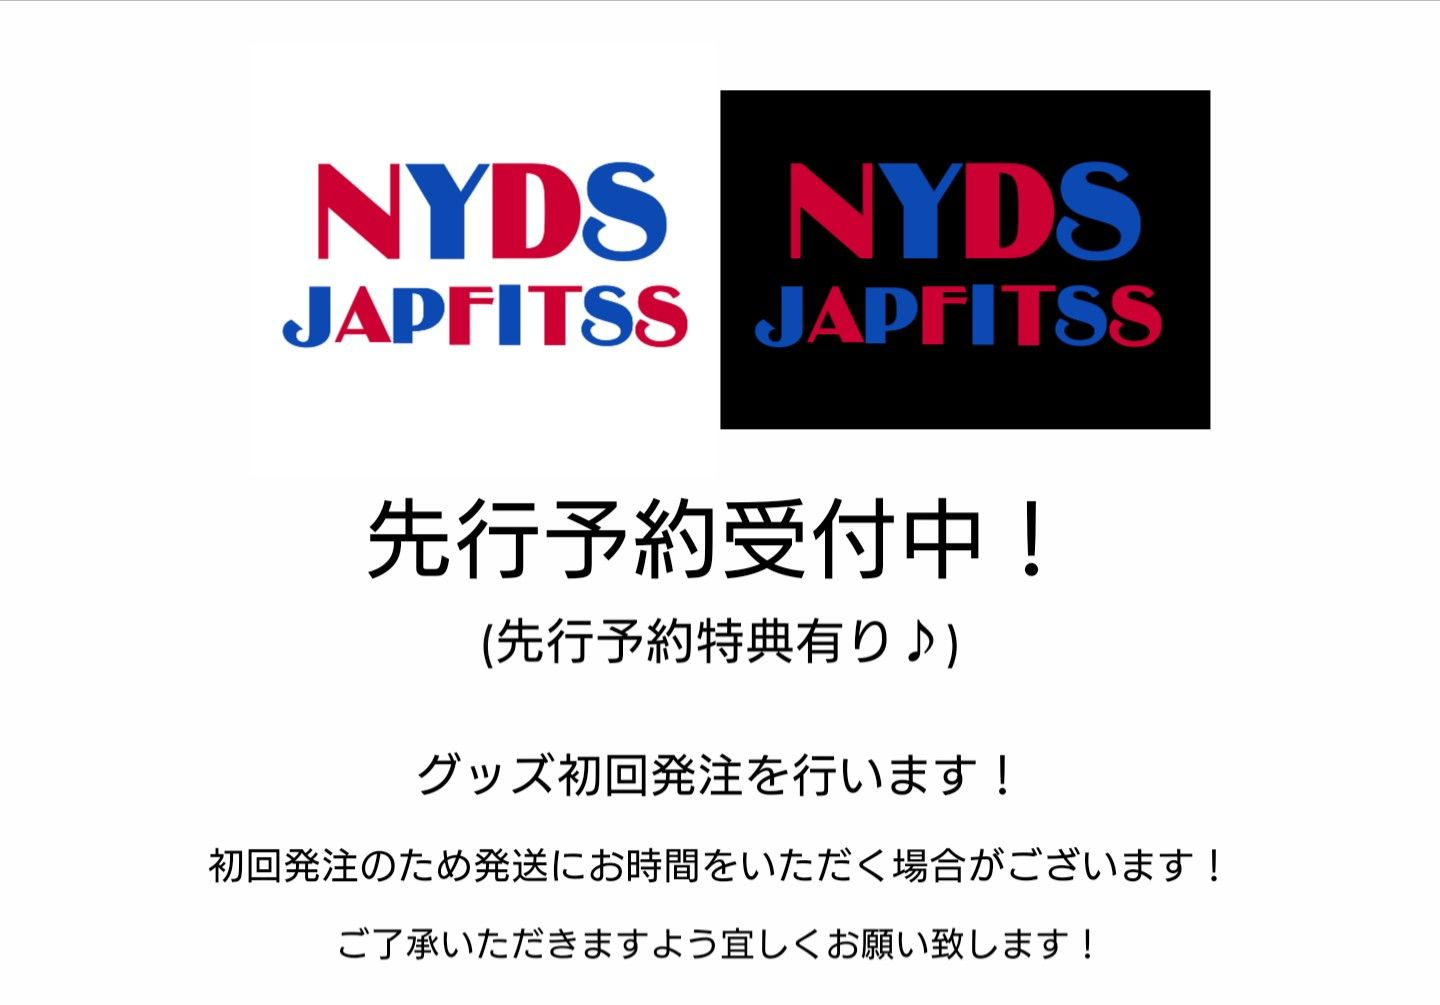 NYDS